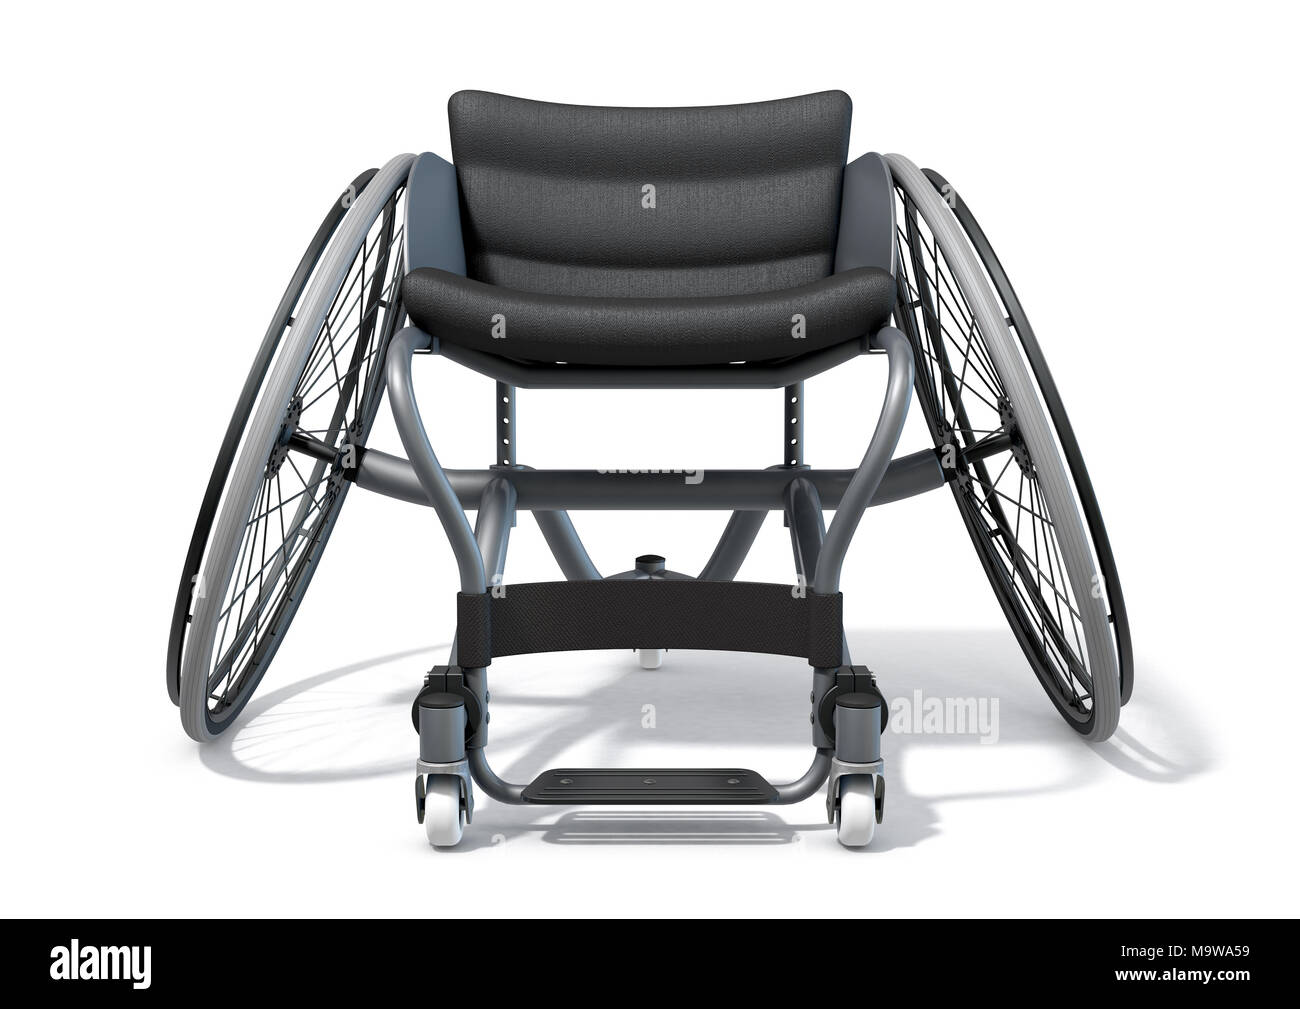 A modified wheelchair used by handicapped athletes to compete in various sporting codes on an isolated background - 3D render - Stock Image